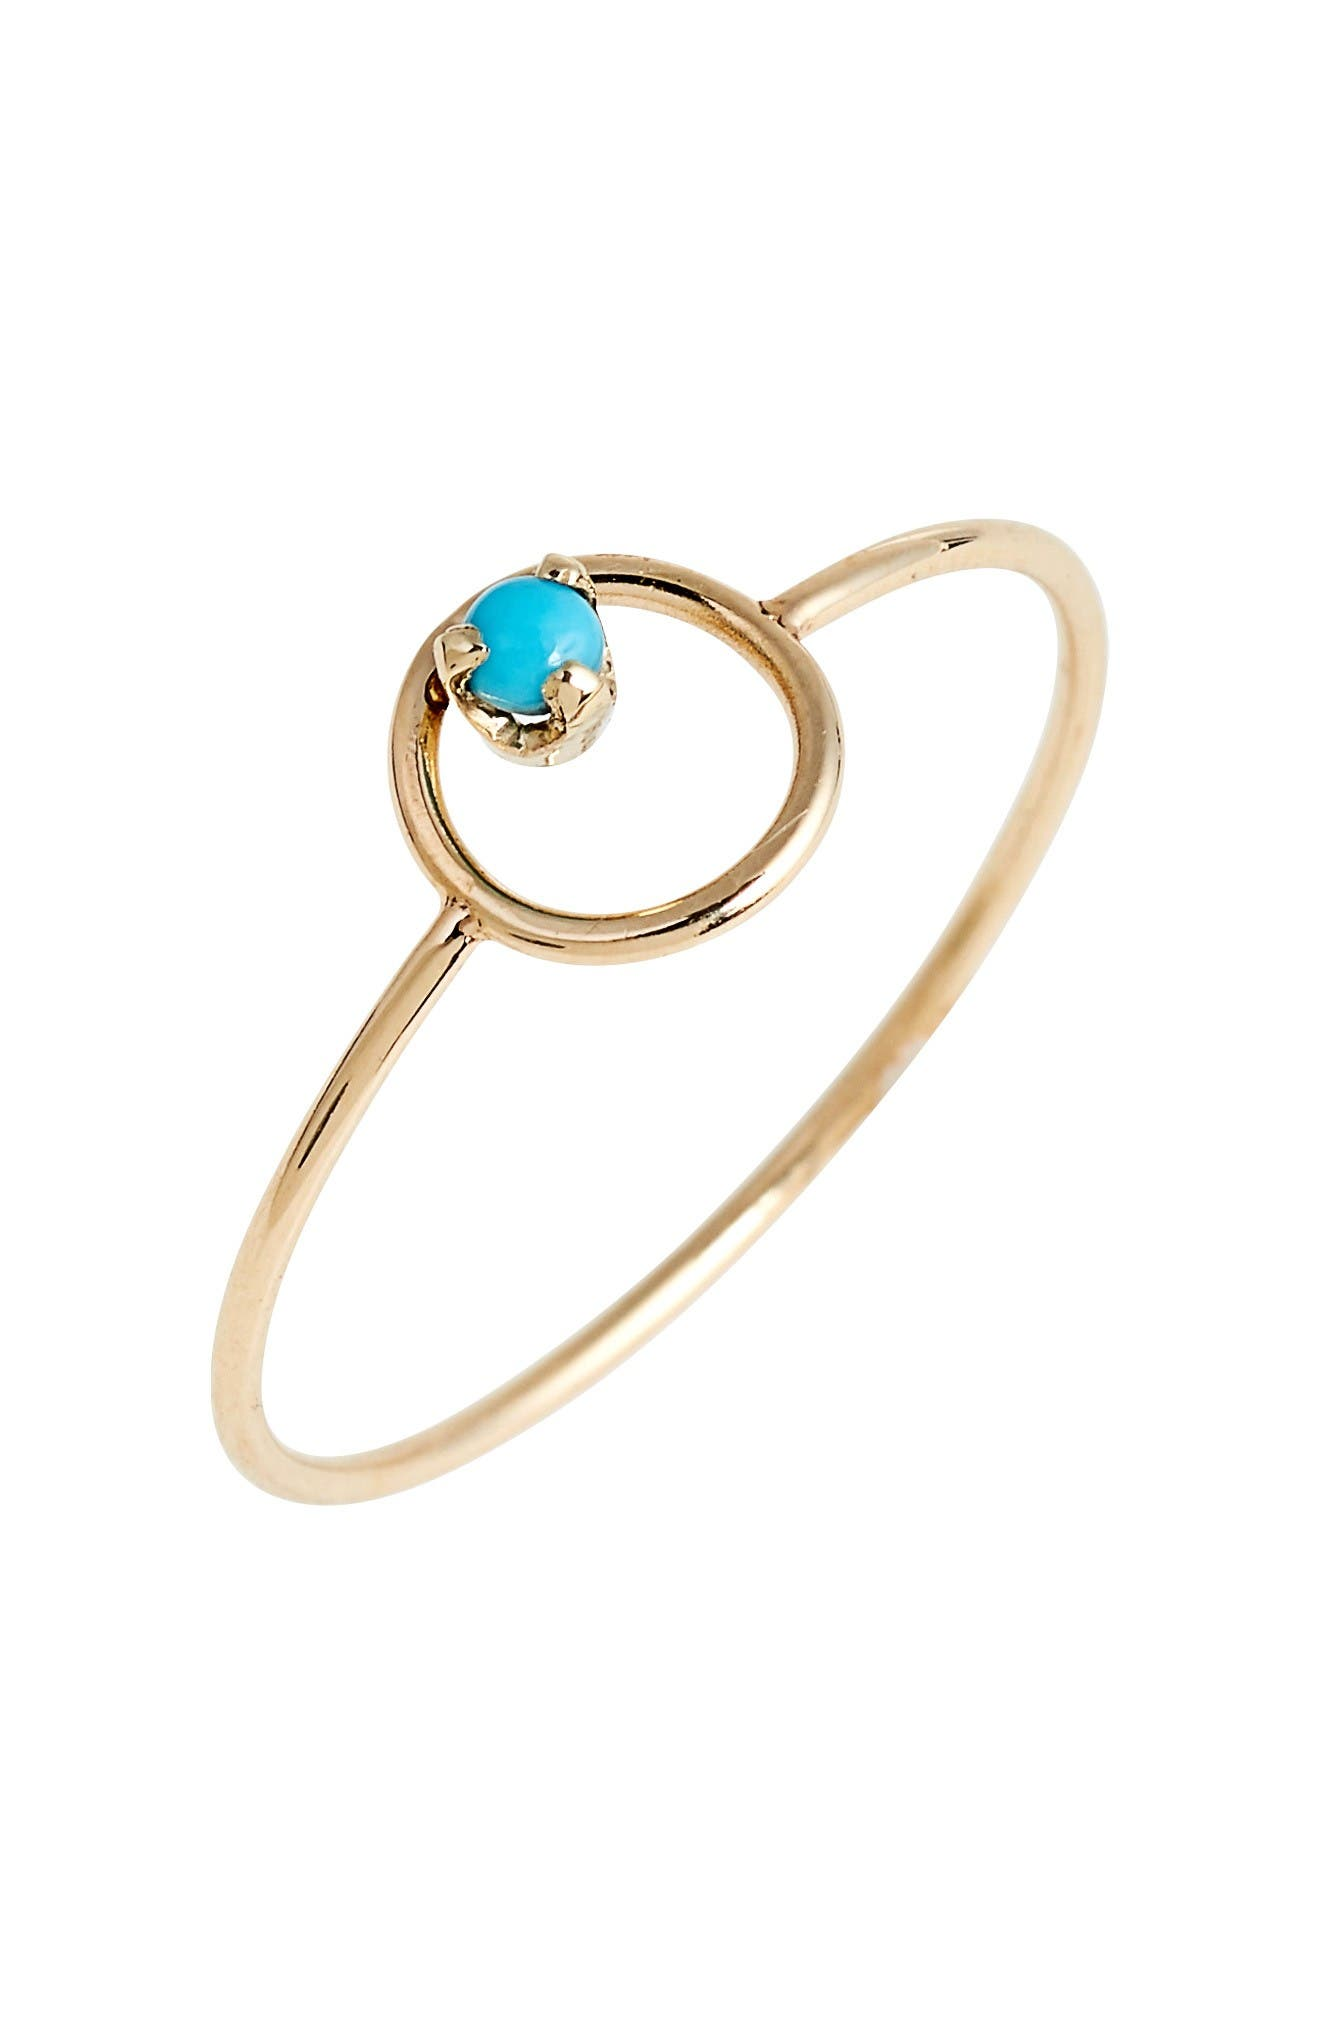 ZOË CHICCO Turquoise Circle Ring